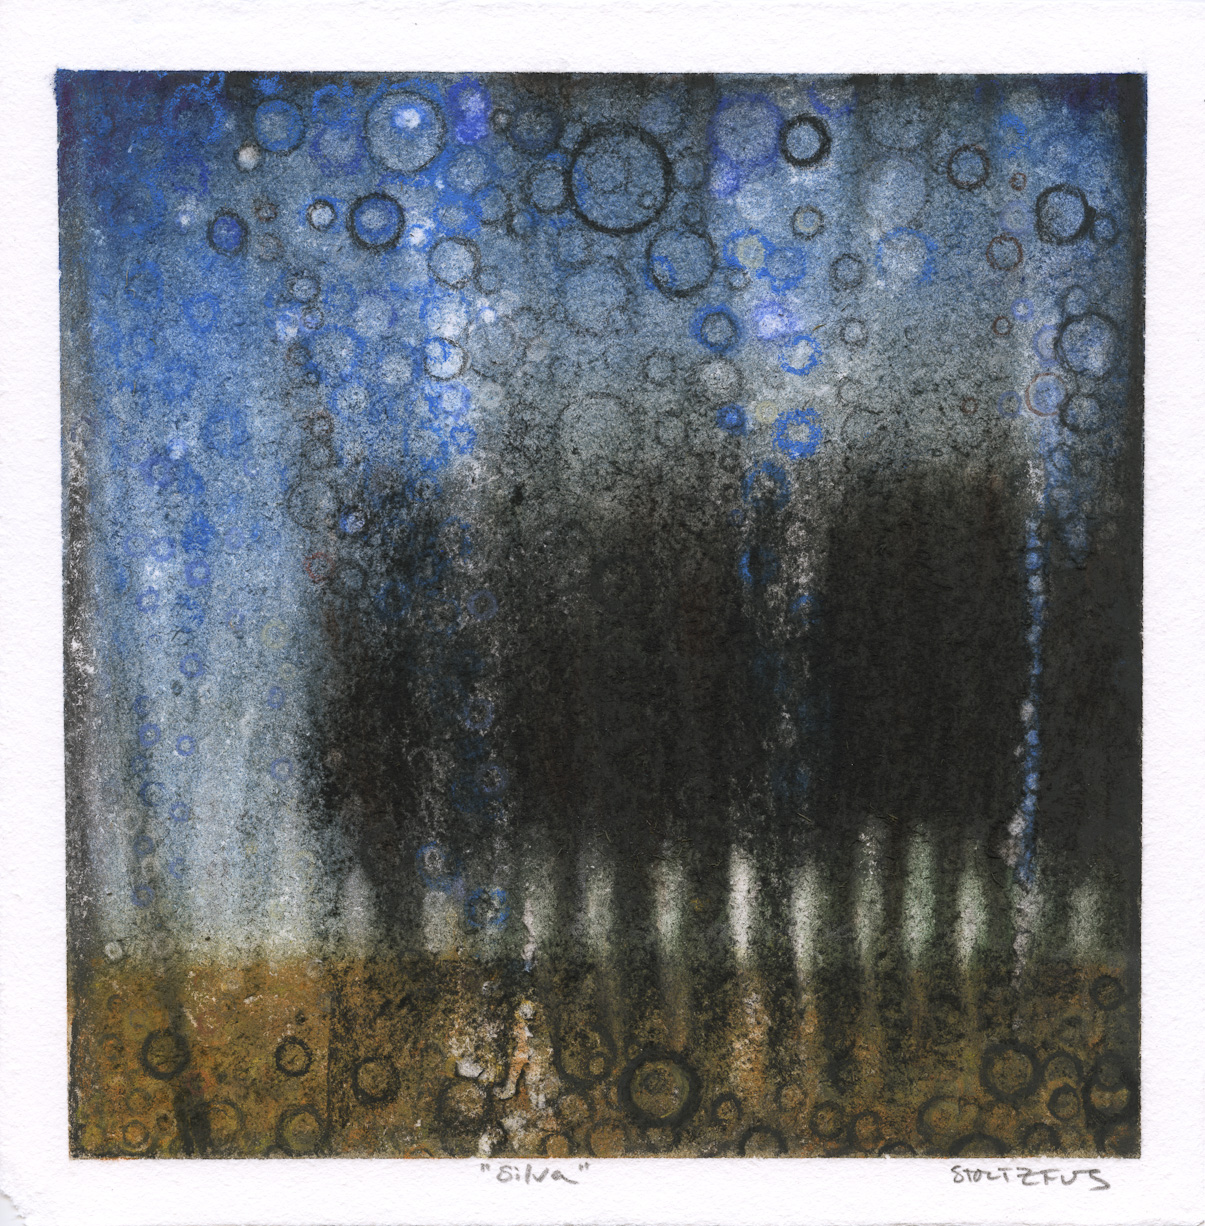 """Silva"" by Randall Stoltzfus, 2012, pigment on paper, 8.5 inches square"